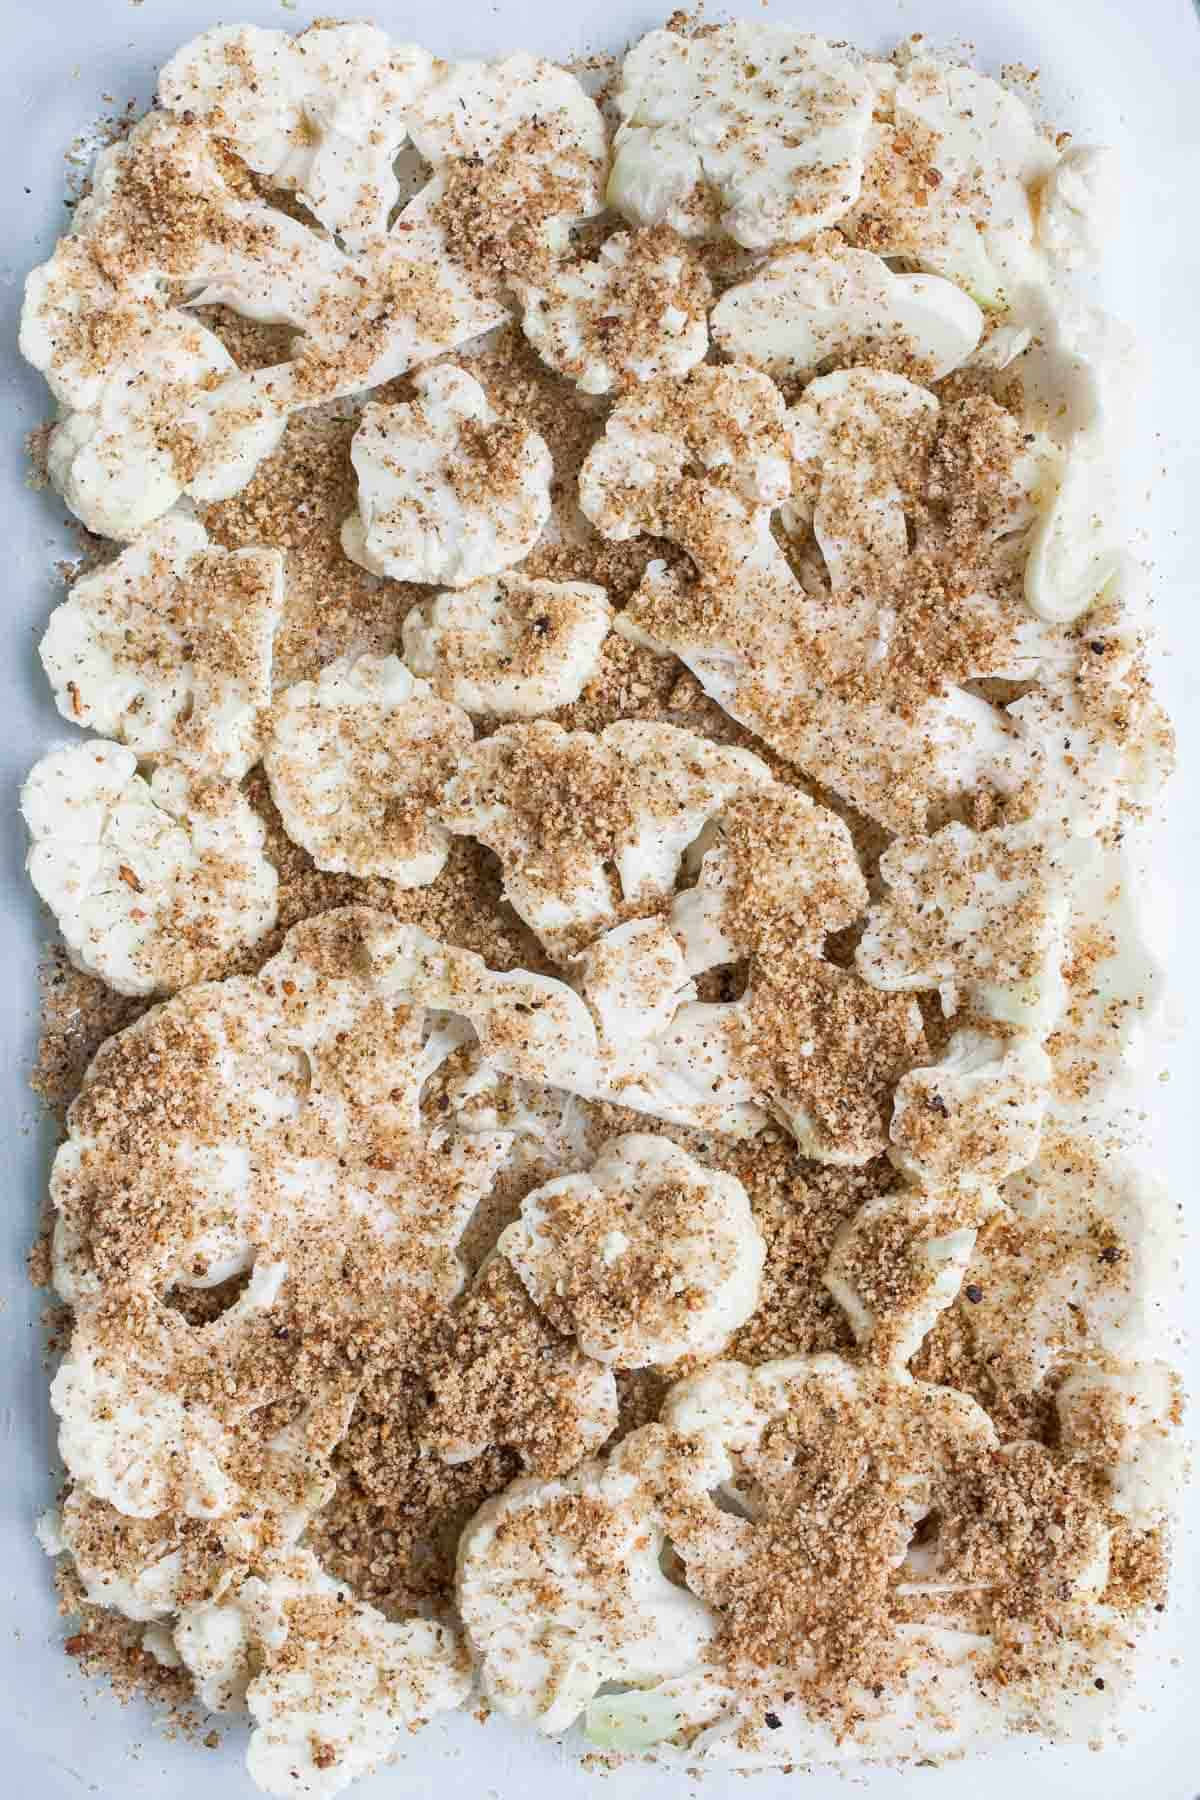 Slices of cauliflower covered with breadcrumb topping in a baking dish